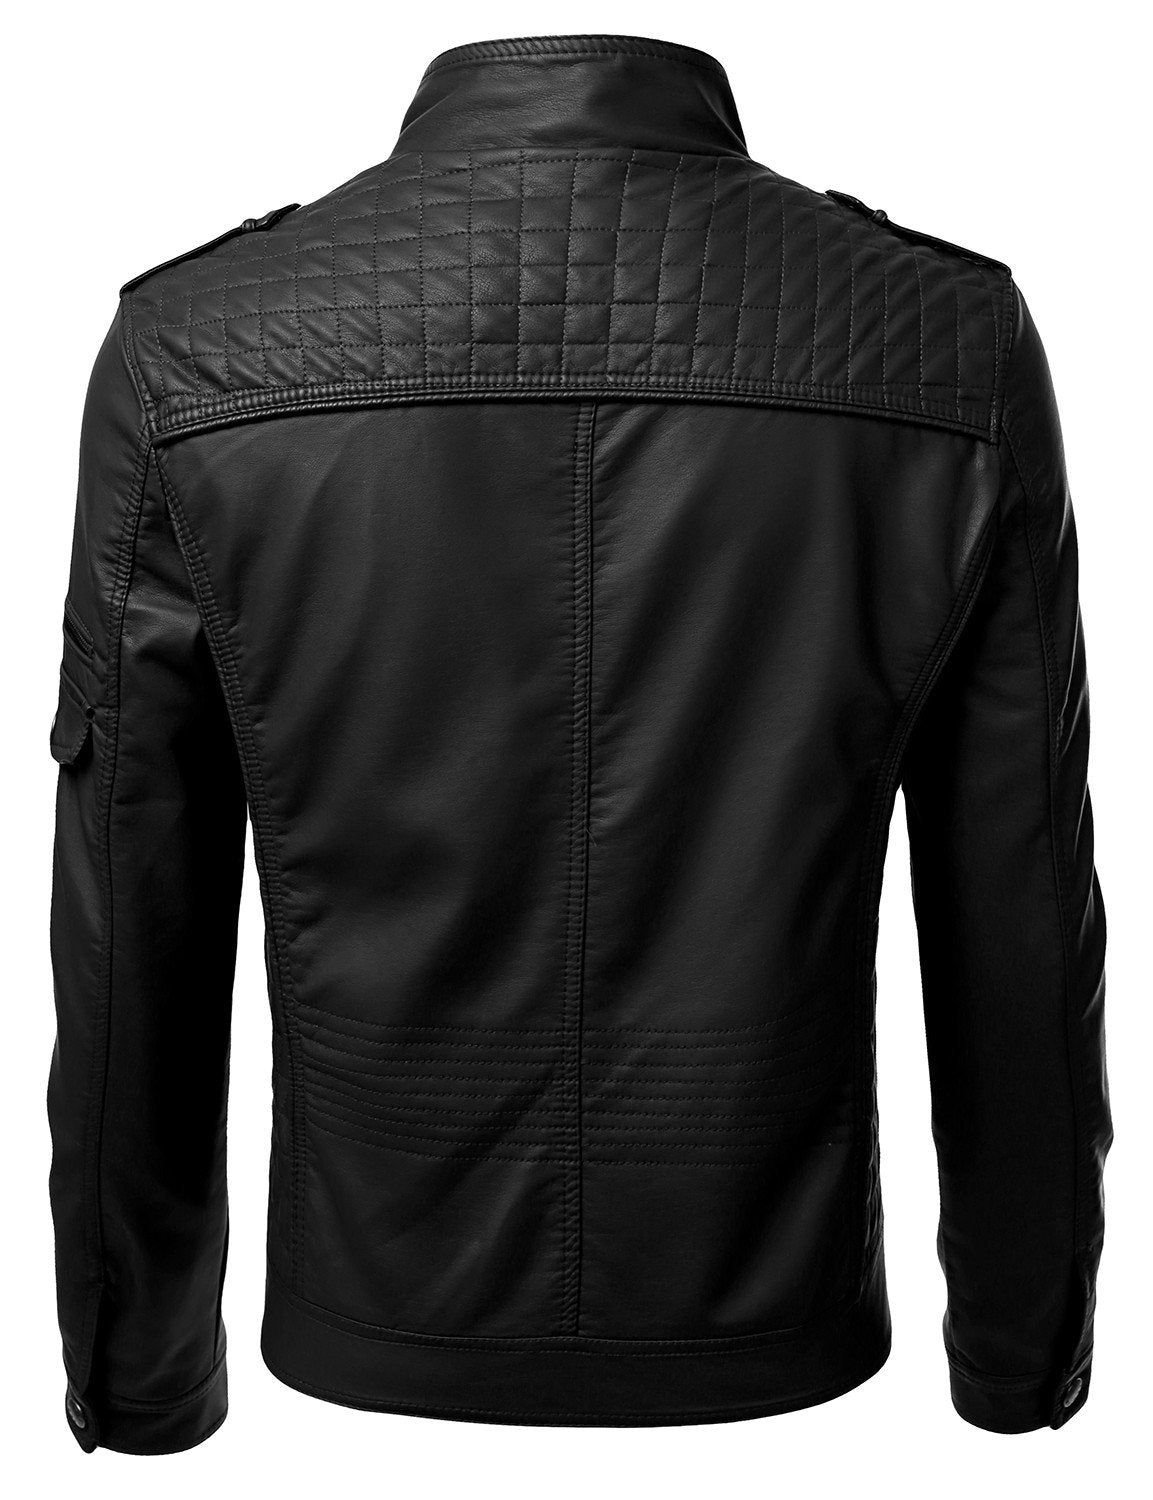 BLACK PU Leather Zippered Jacket - MONDAYSUIT